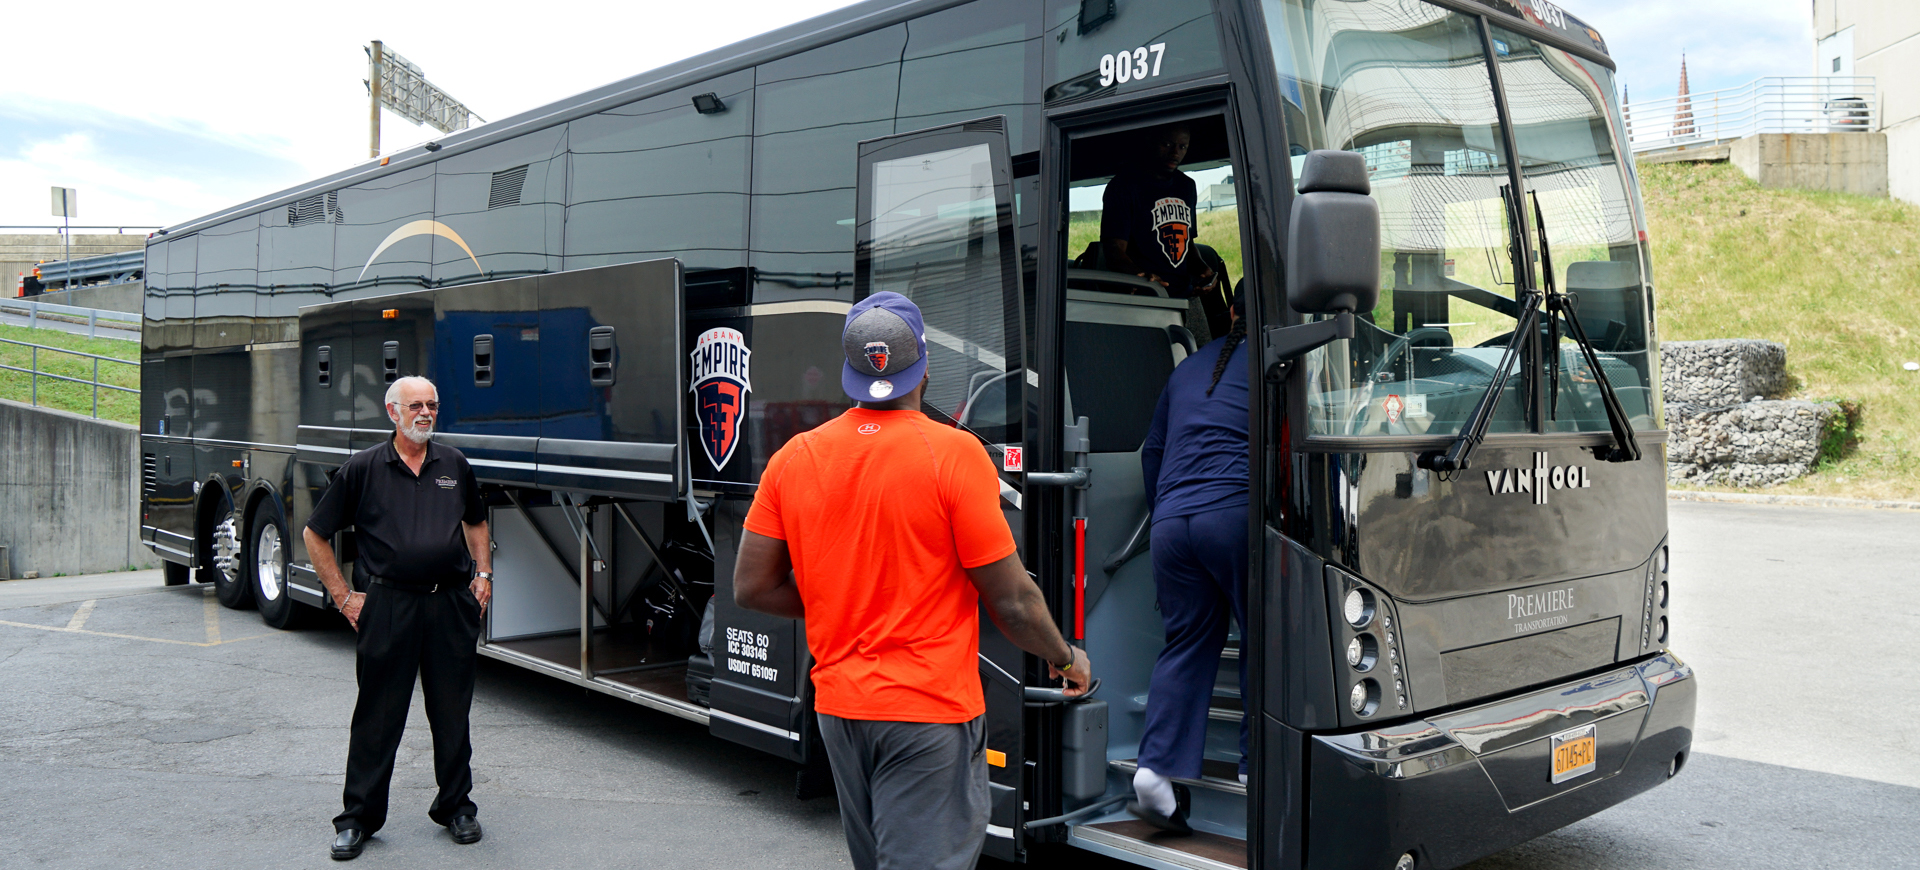 Sports team getting on Premiere bus with driver